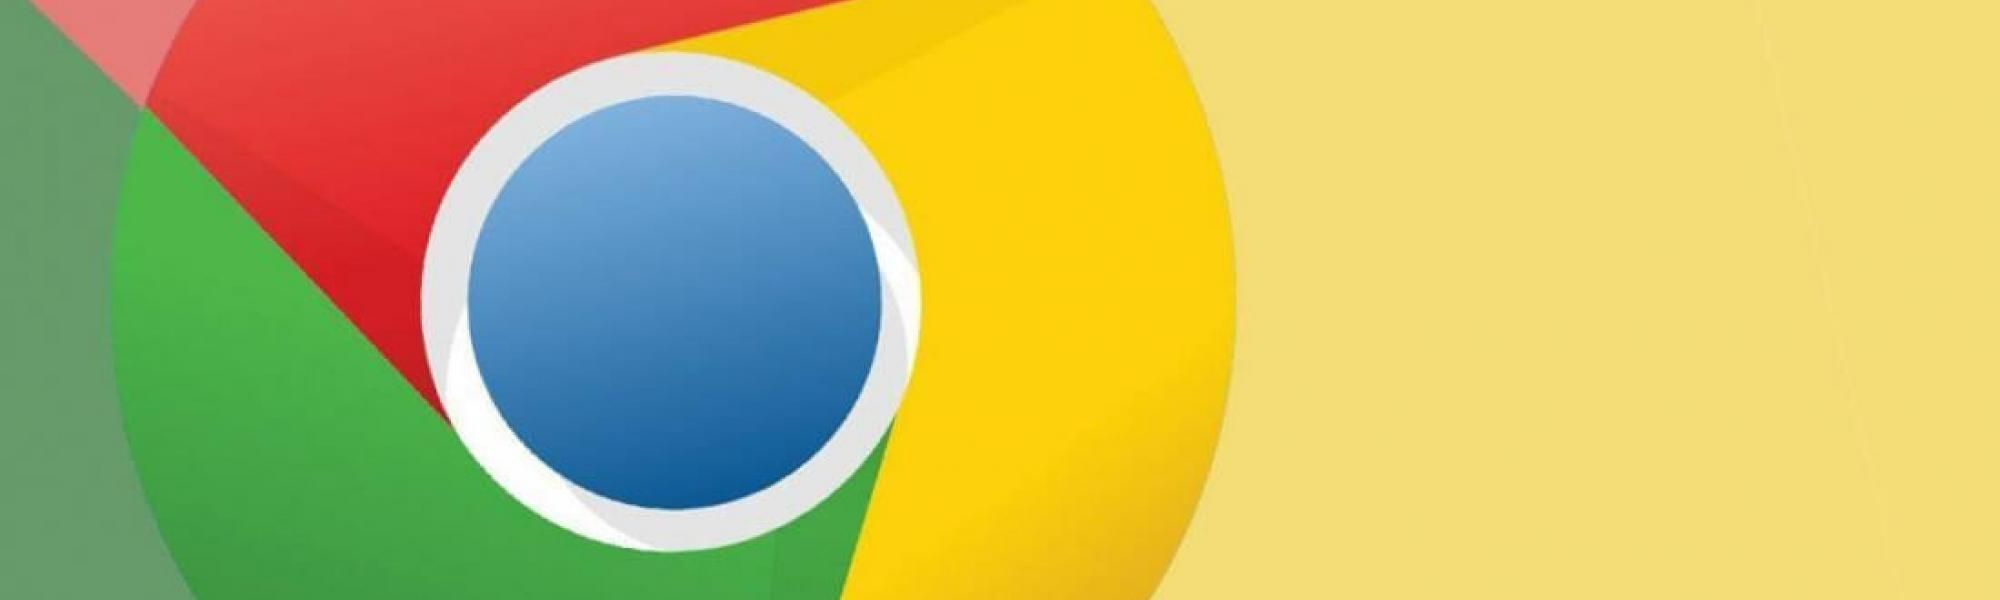 Chrome Insecure Banner - Banishment